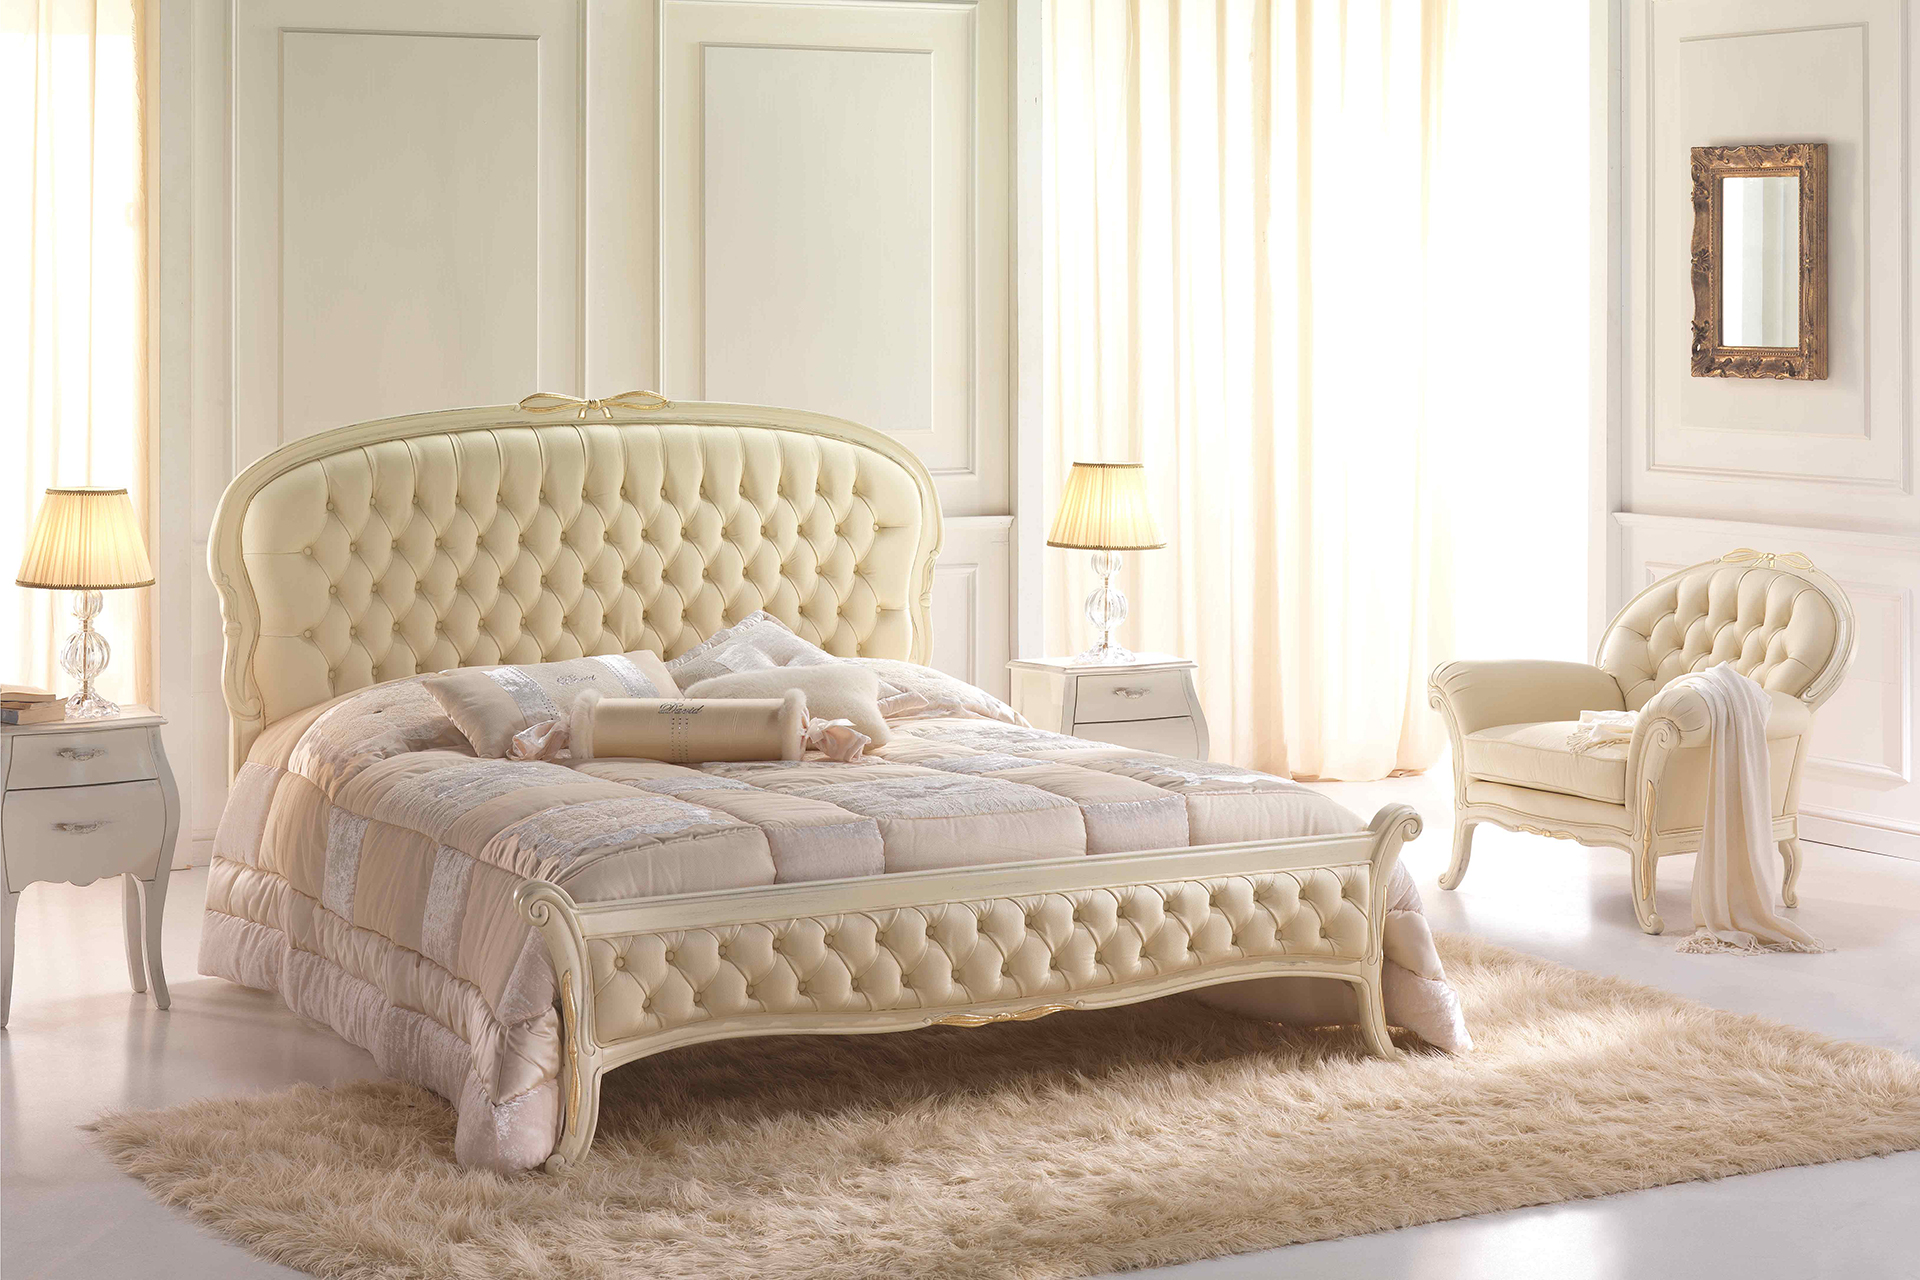 Beatrice orsitalia for Design camera da letto matrimoniale